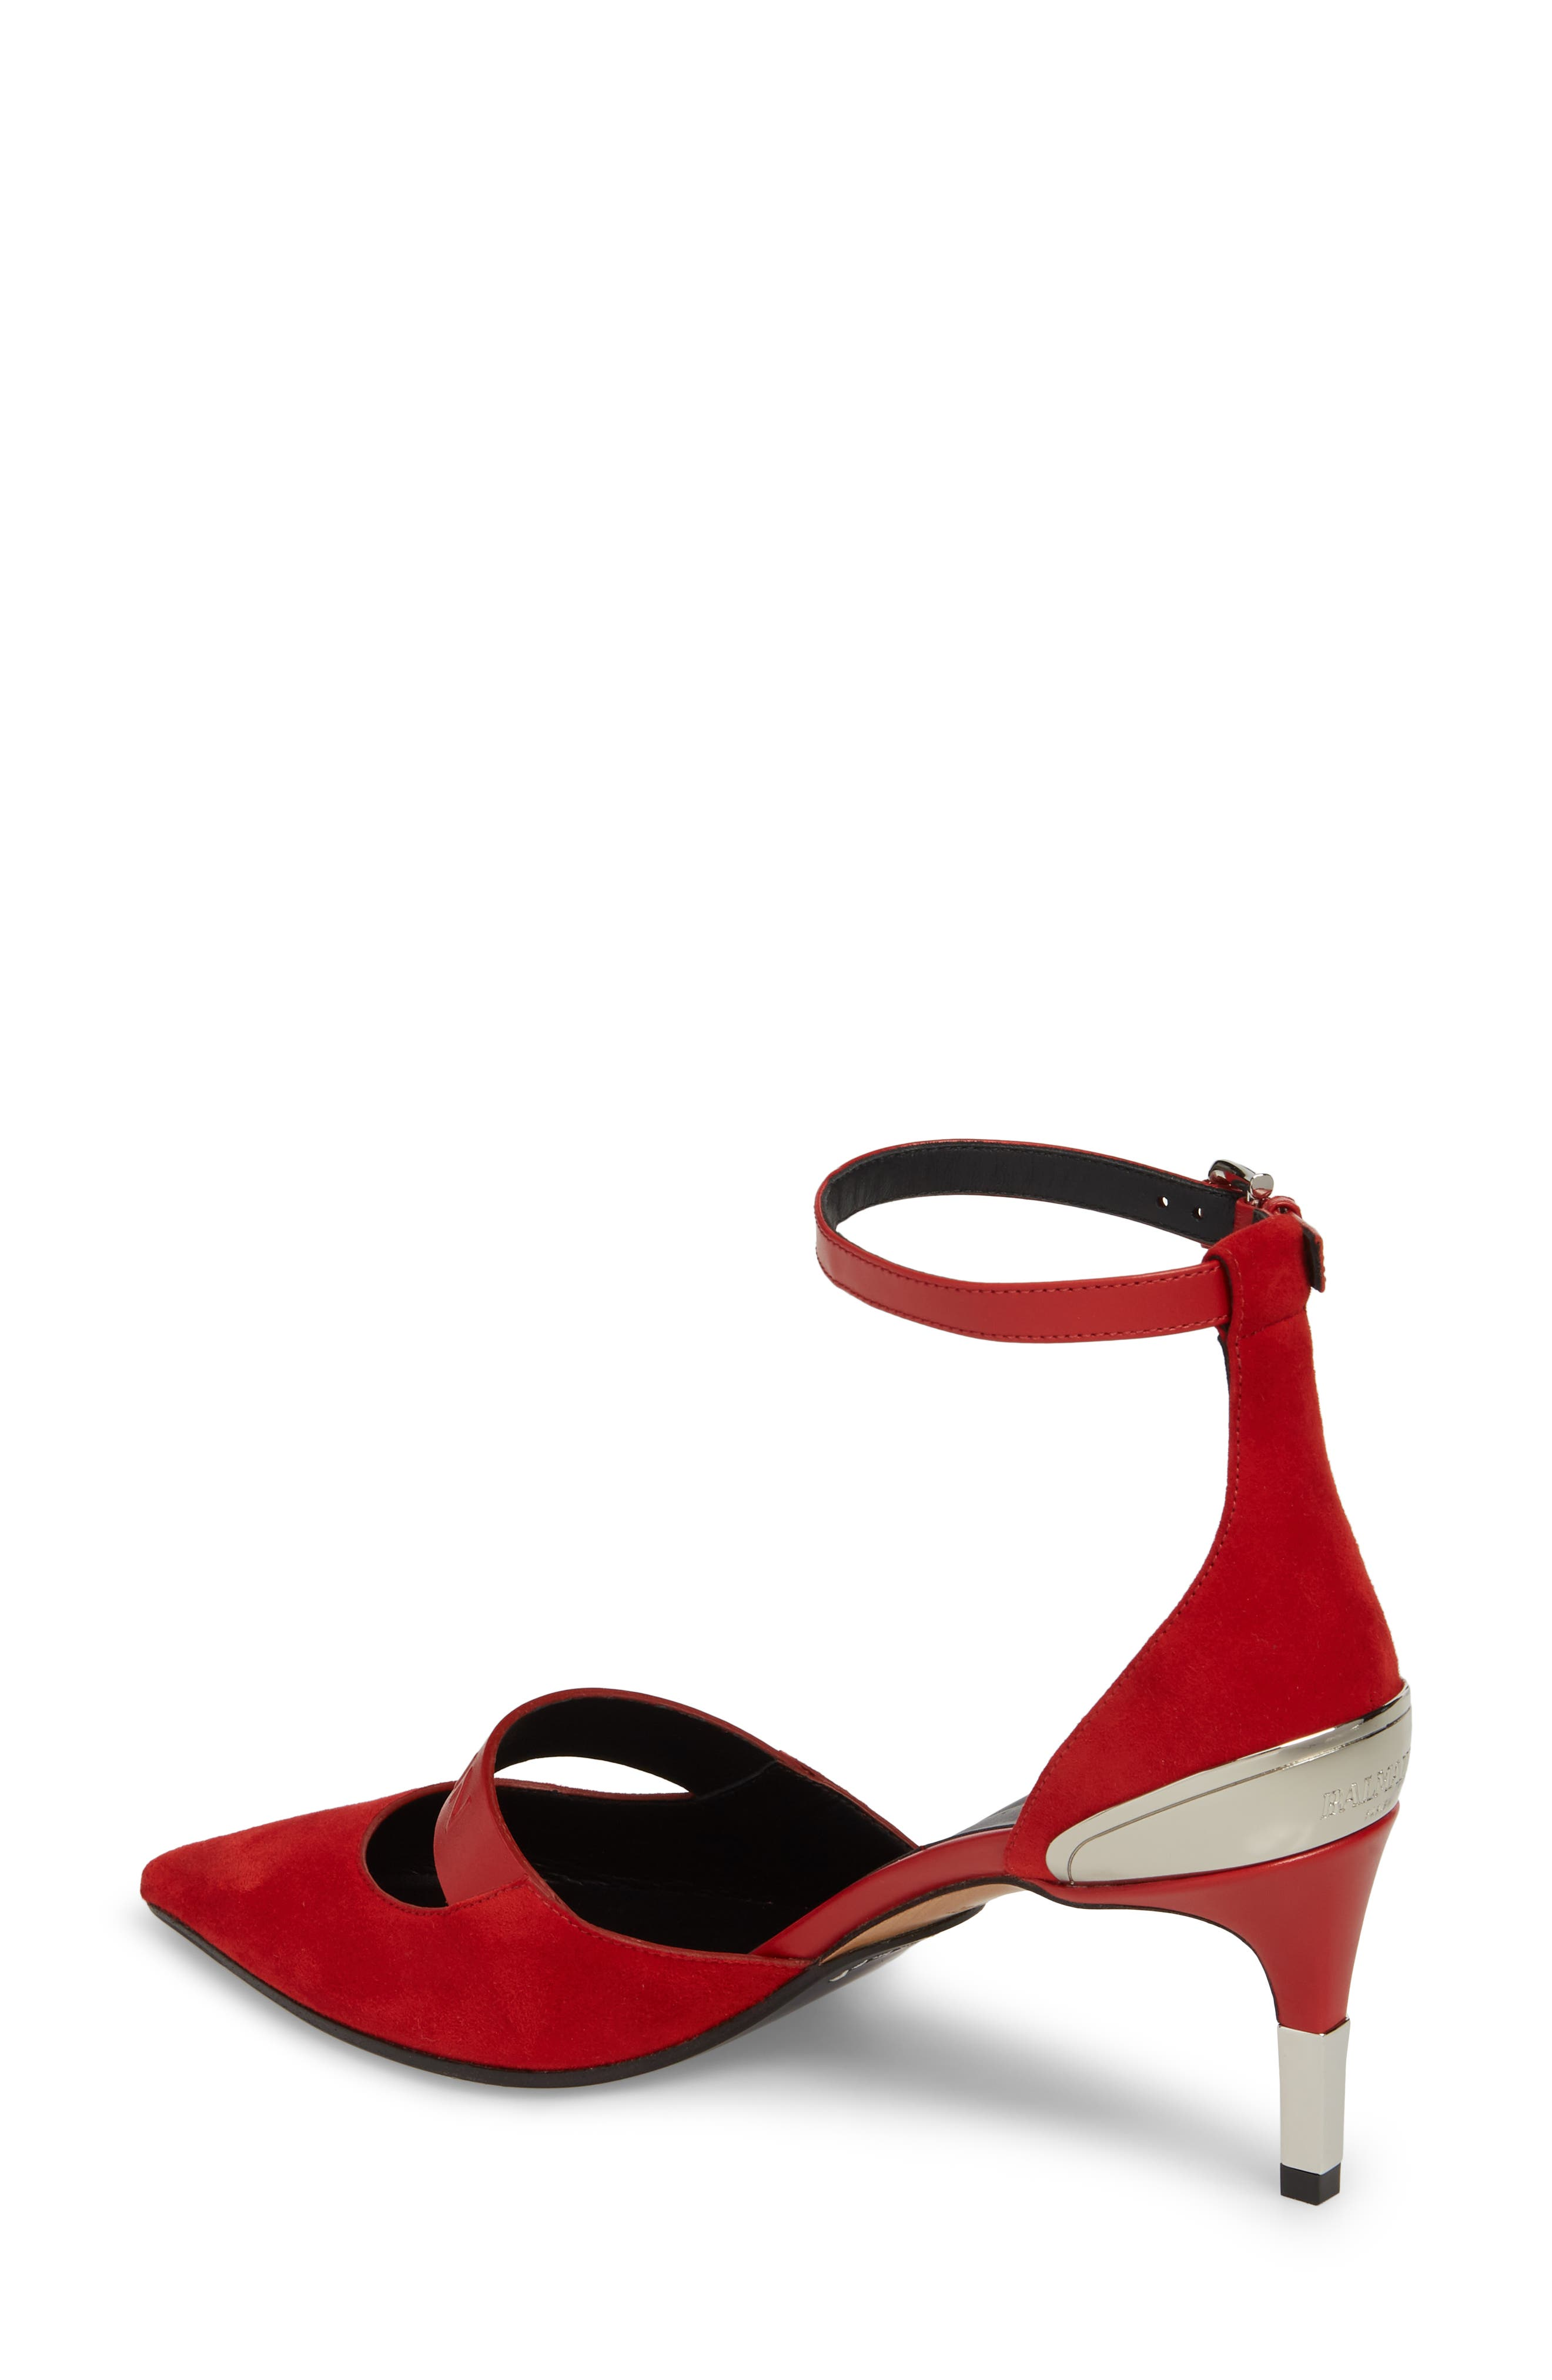 Chance Ankle Strap Pointy Toe Pump,                             Alternate thumbnail 2, color,                             Red